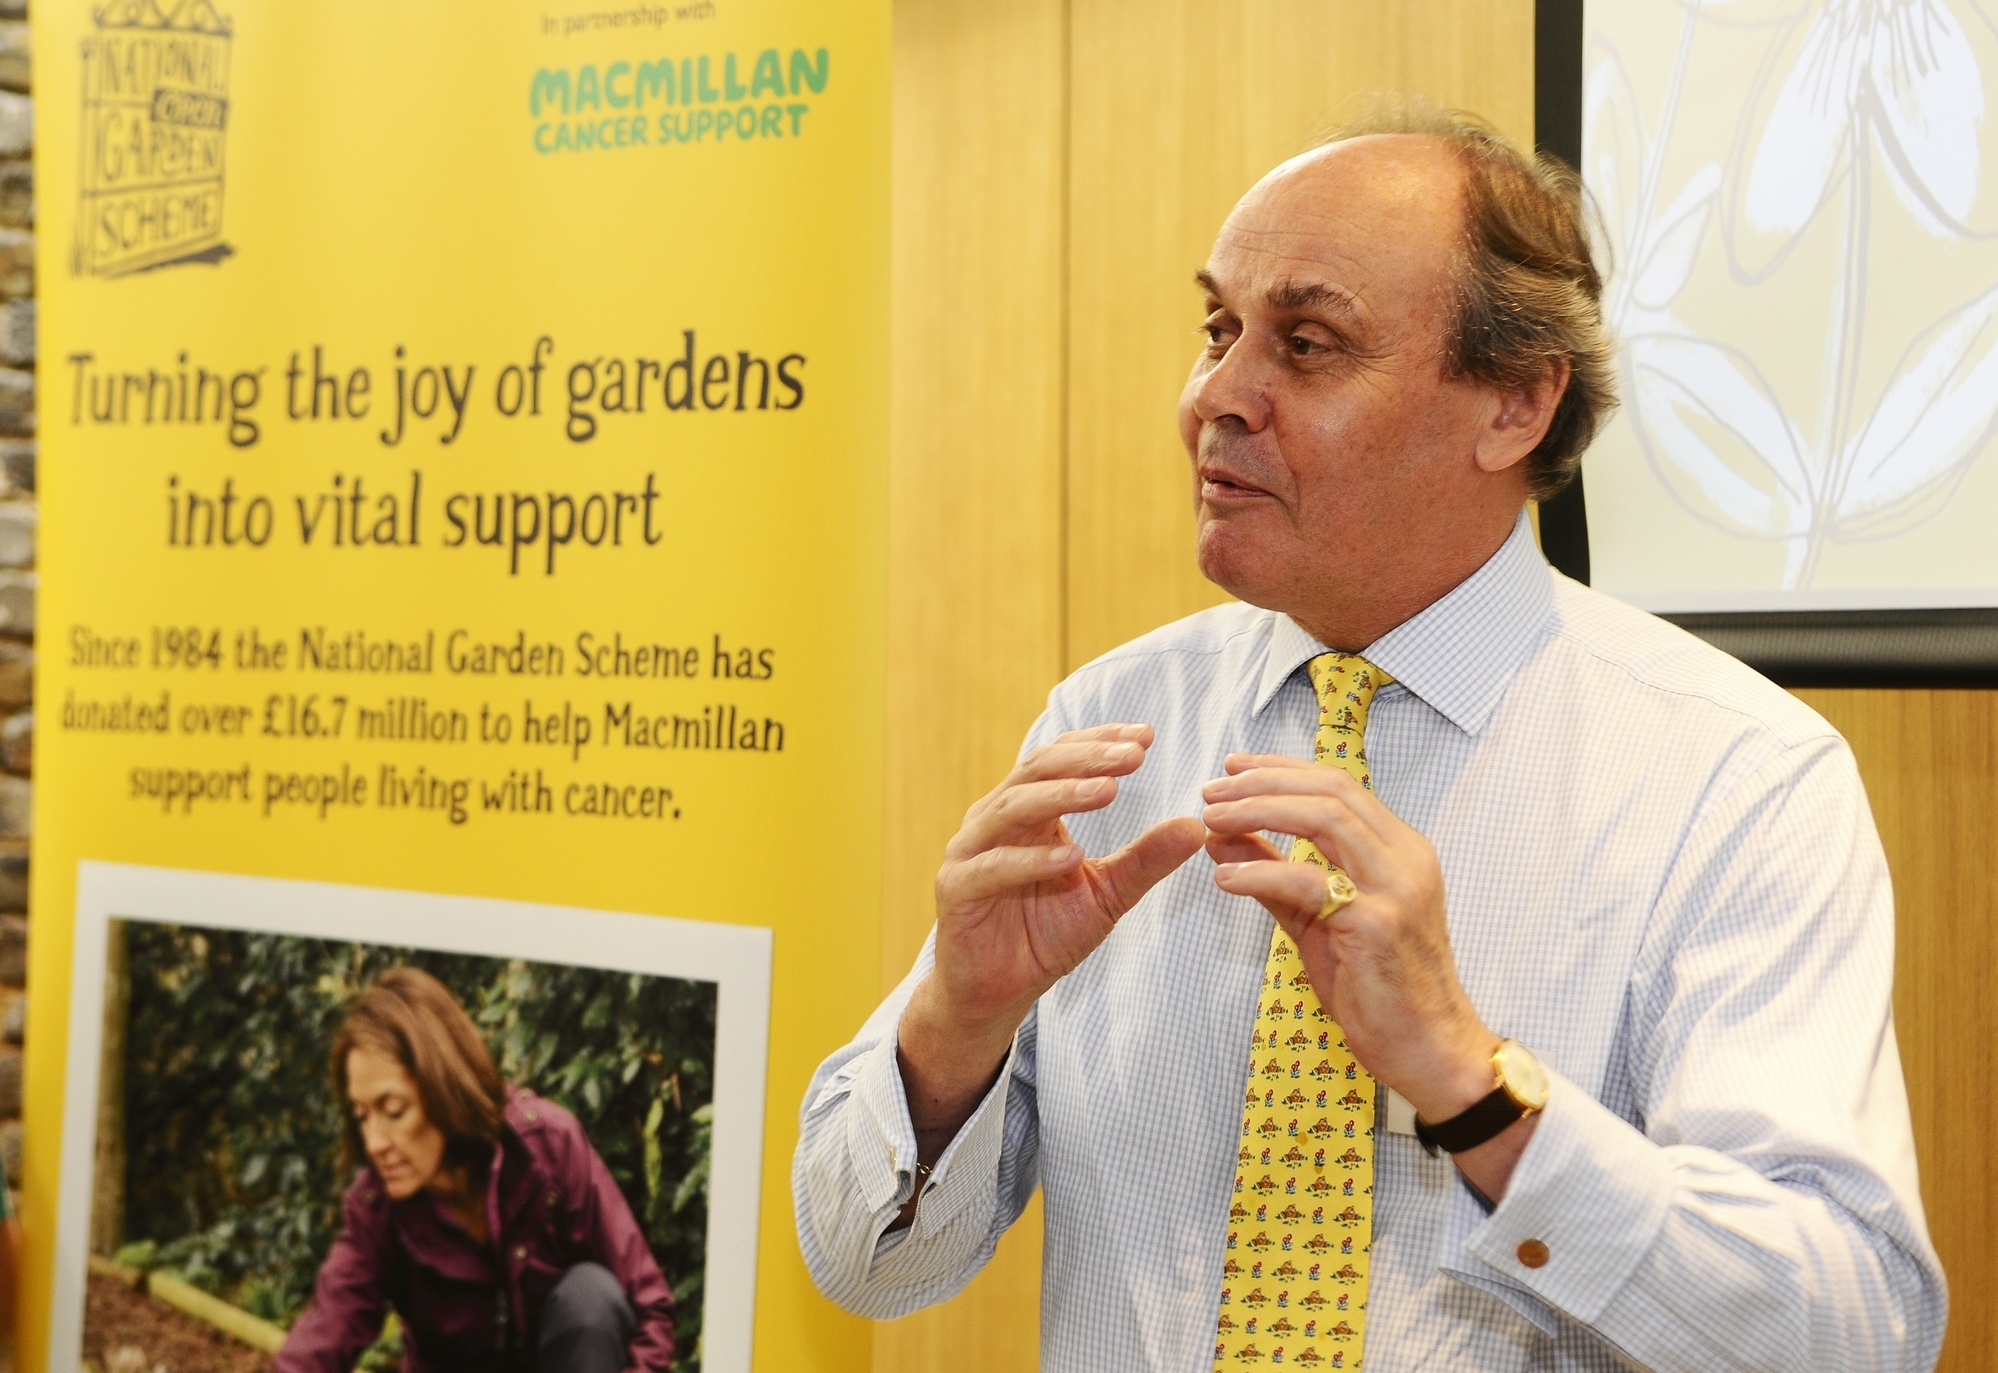 George Plumptre, CEO of the National Garden Scheme